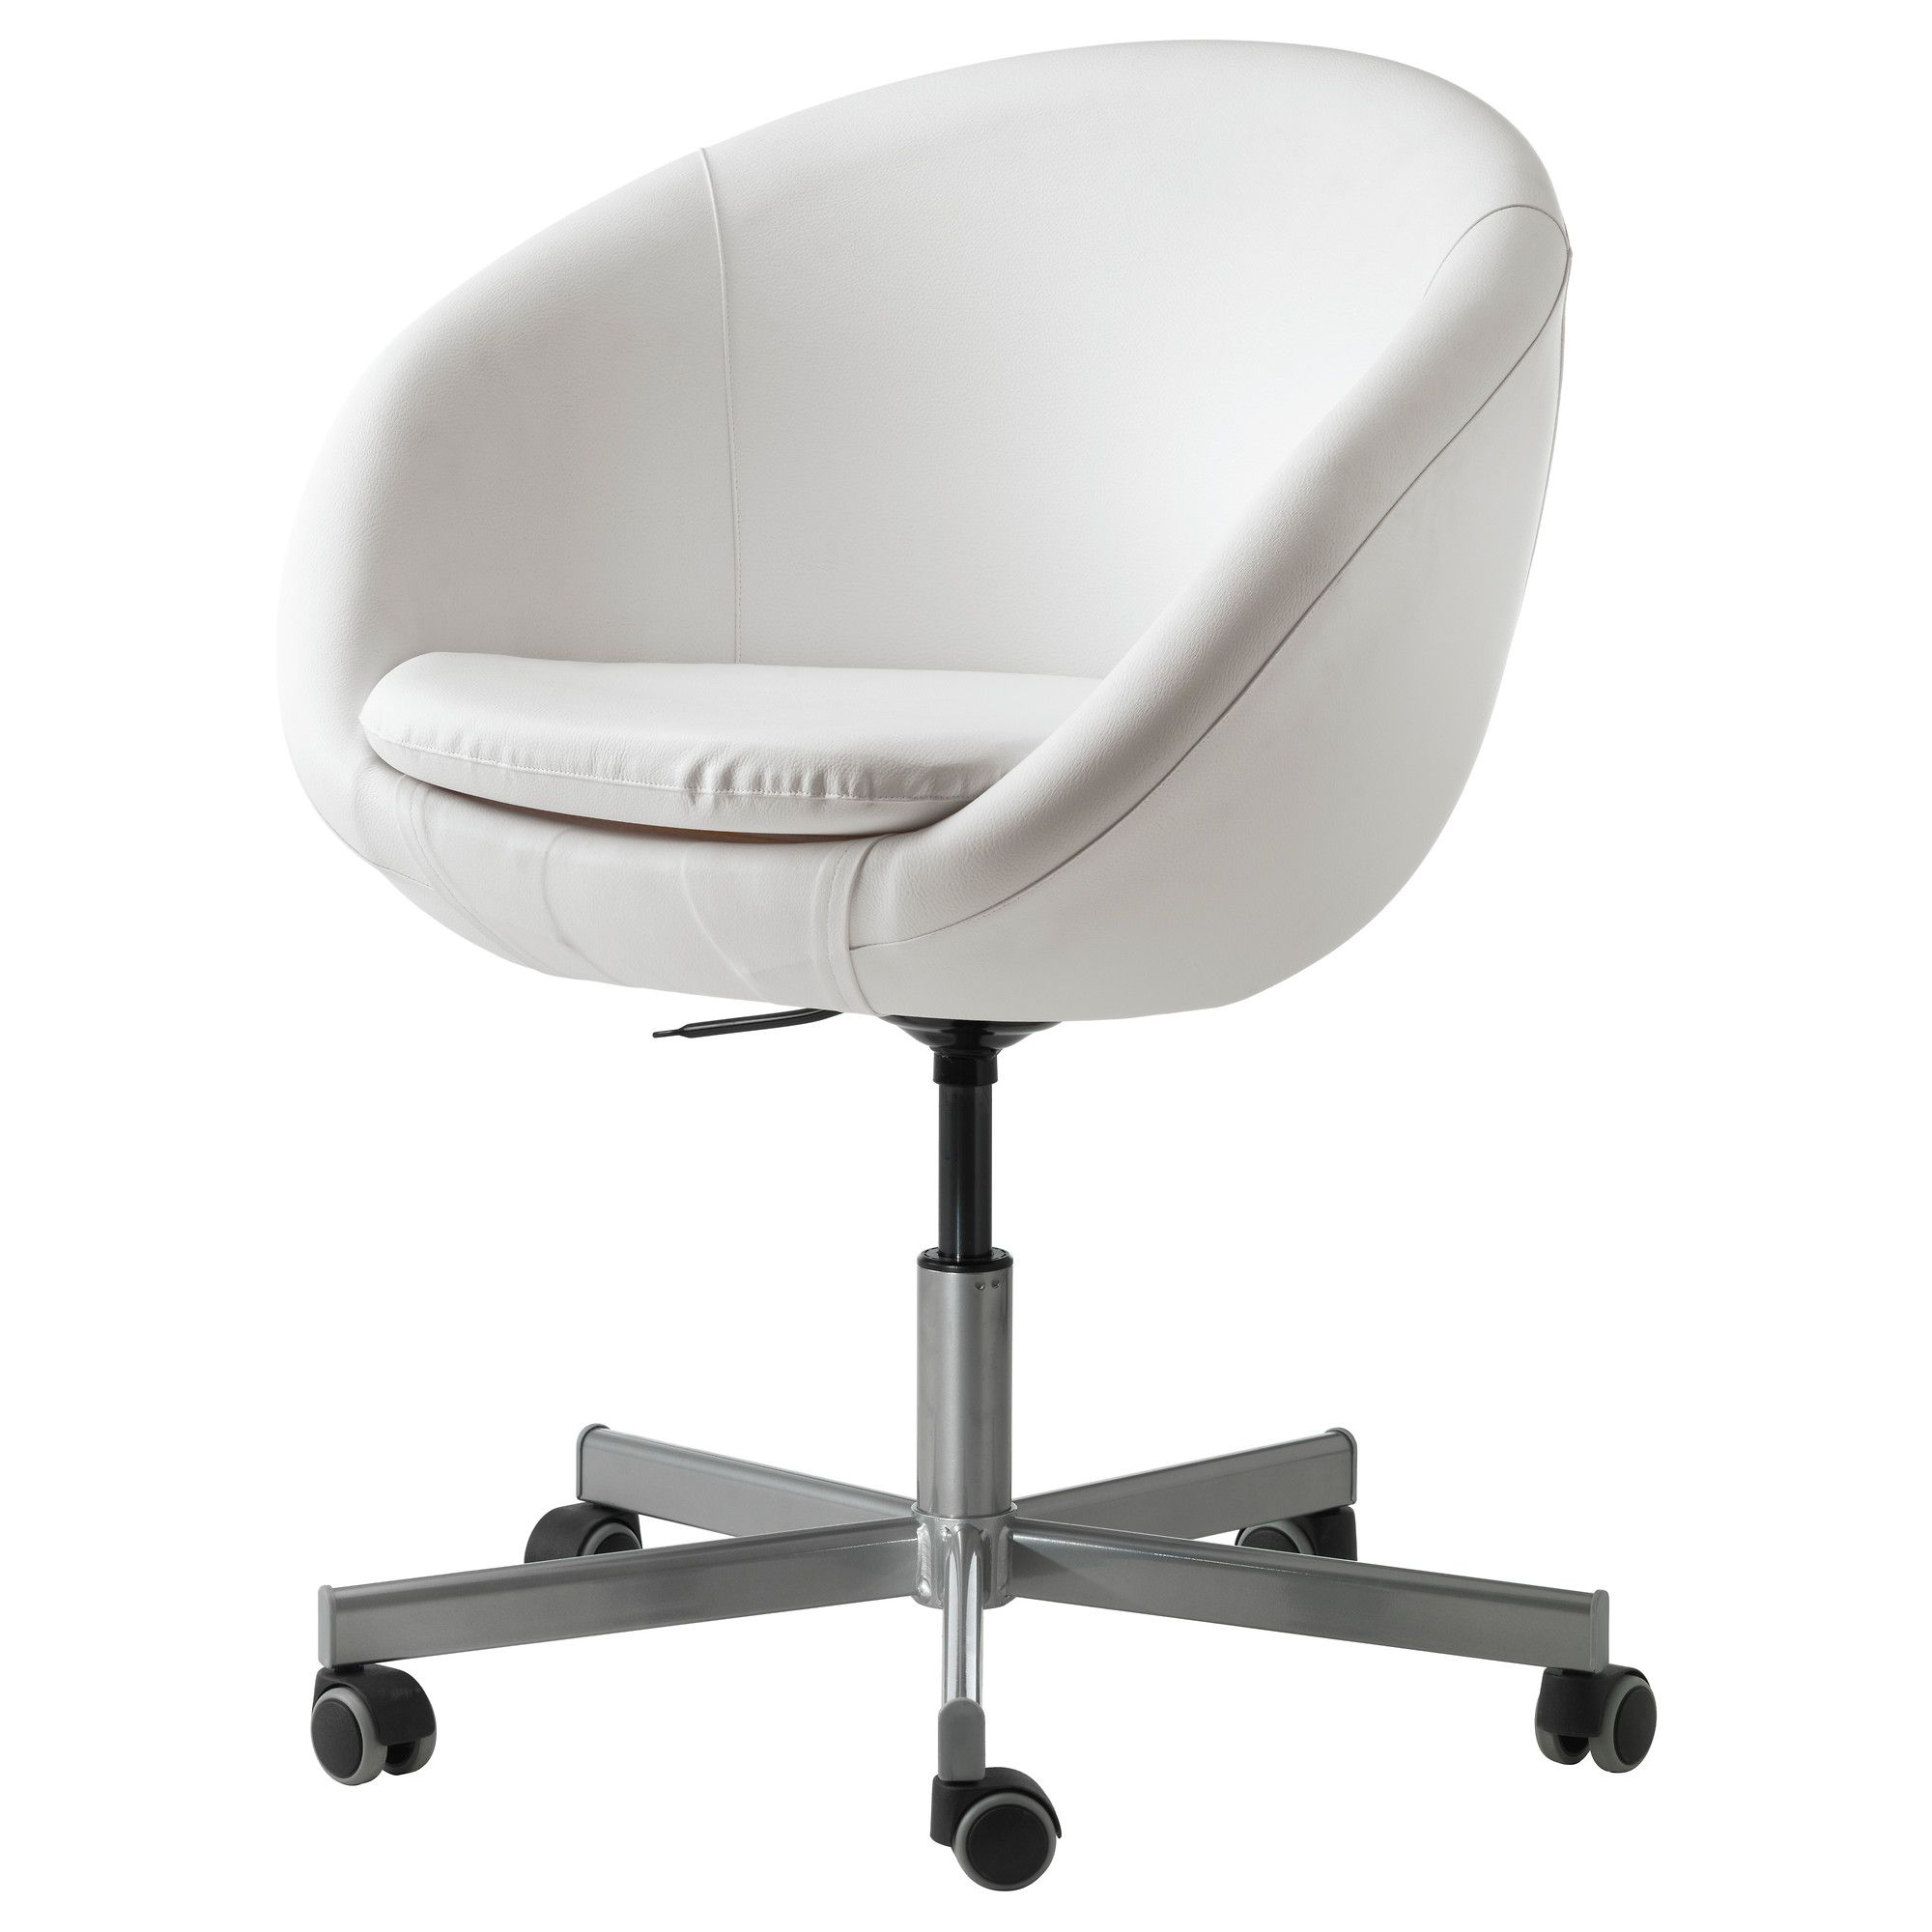 desk chairs white clear plastic dining skruvsta swivel chair idhult ikea the perfectly cute and functional seat for my home office